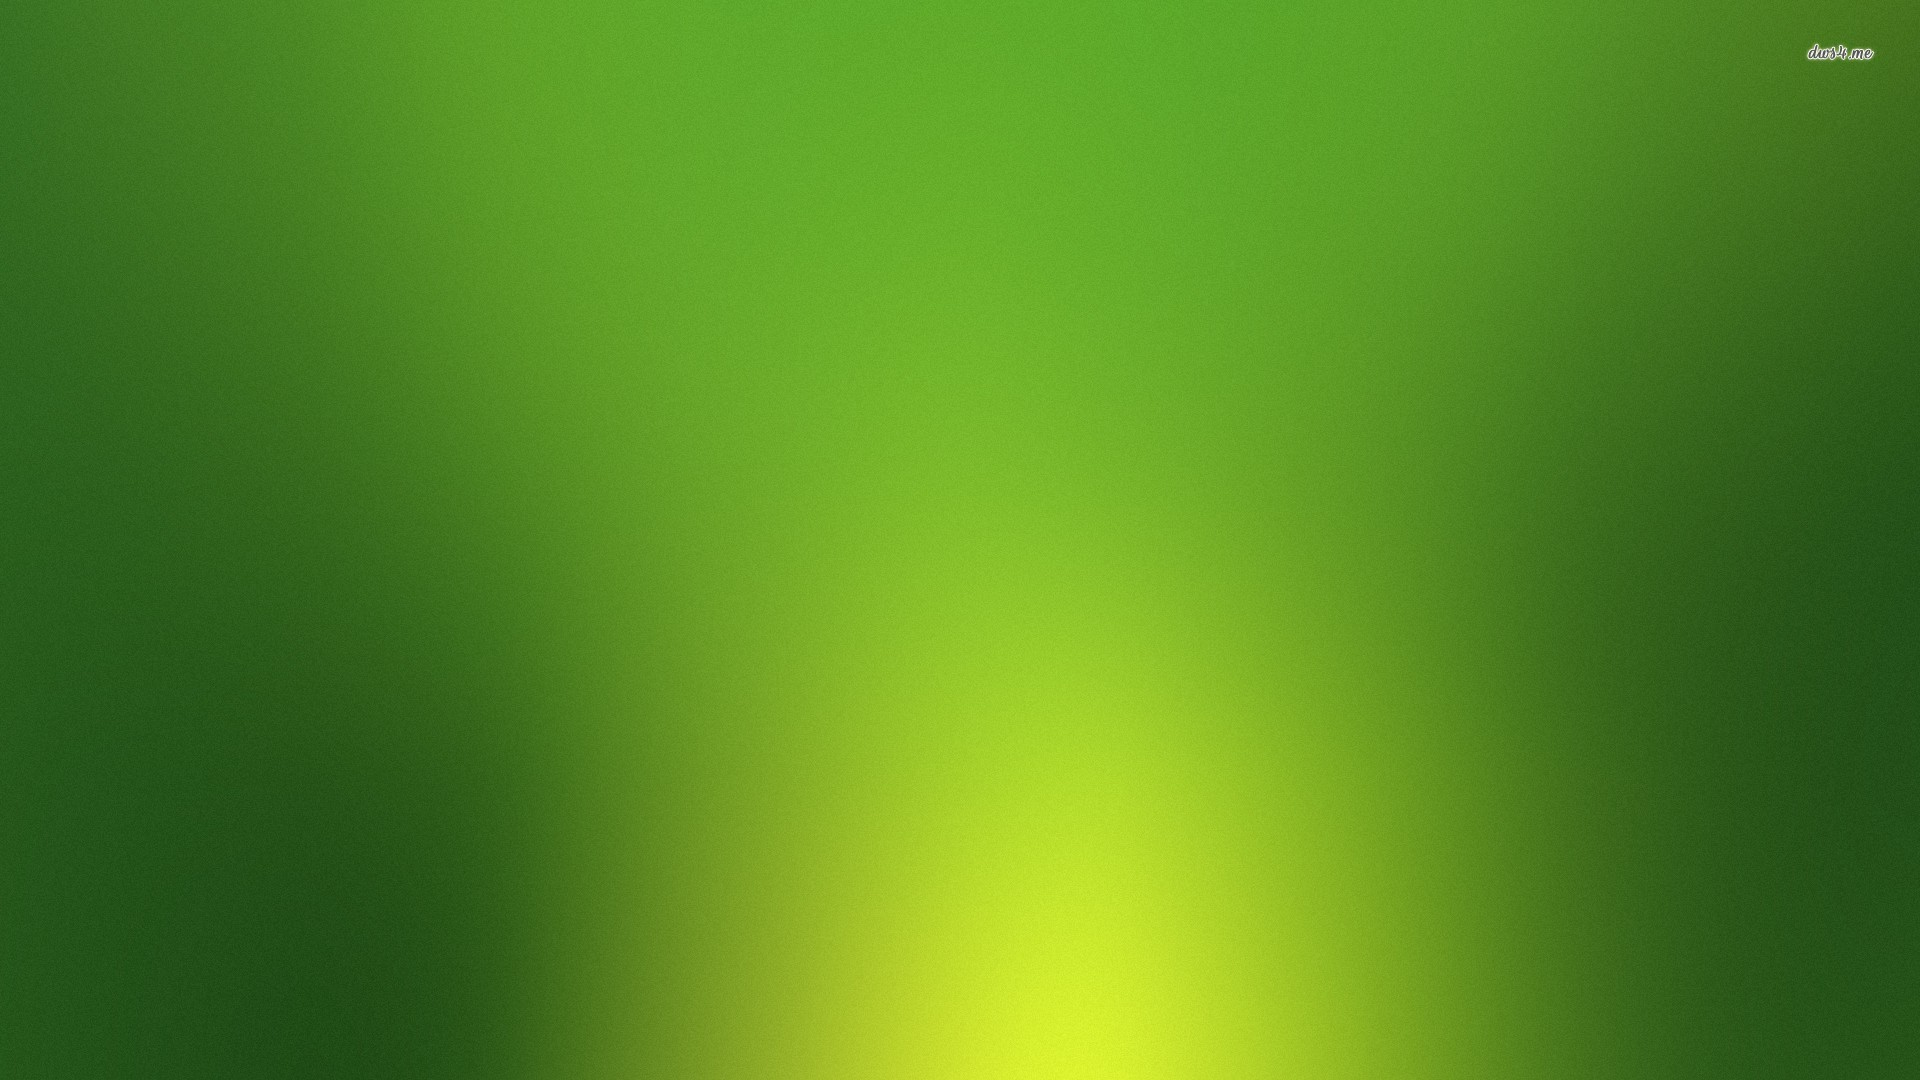 1920x1080 Green gradient Abstract HD desktop wallpaper, Gradient wallpaper - Abstract  no.